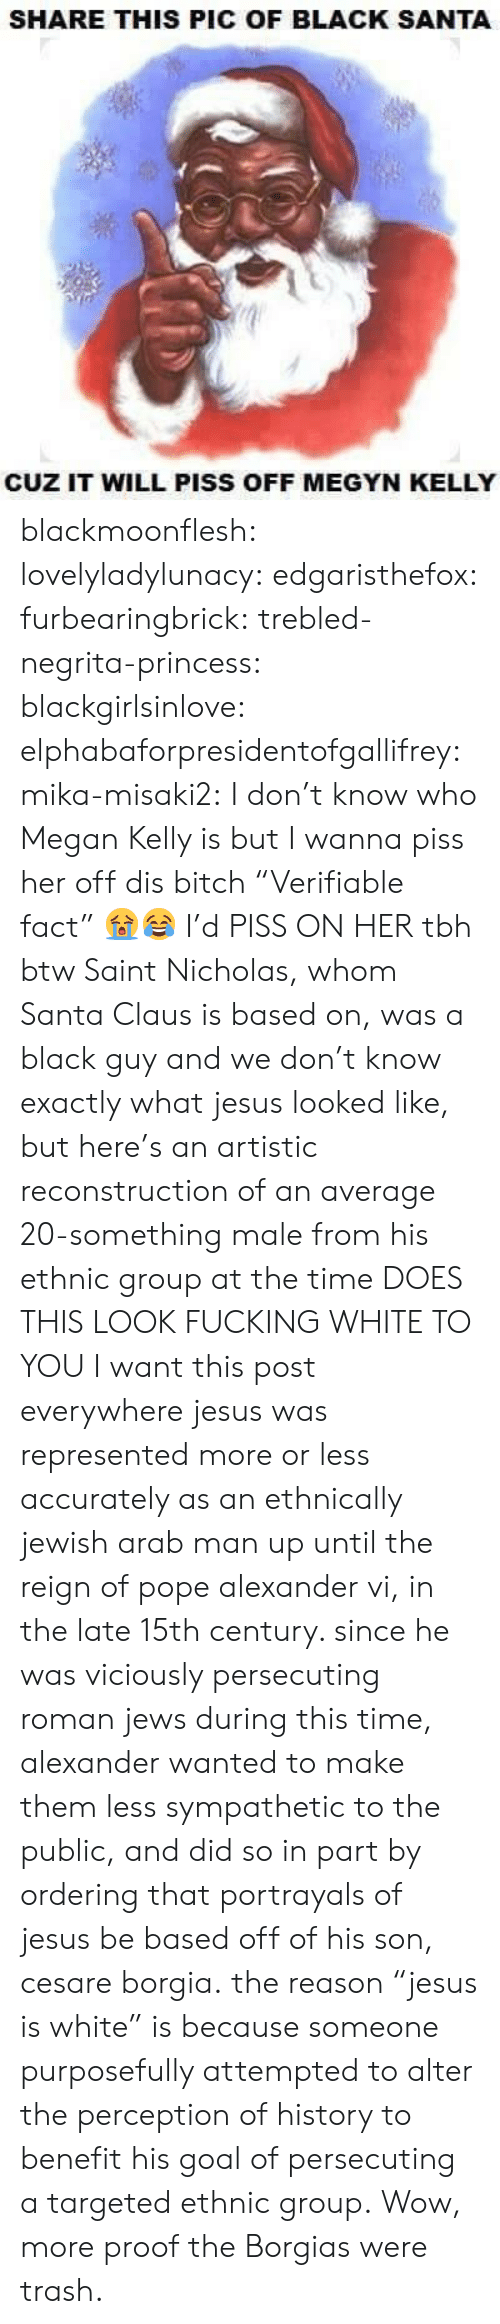 "Bitch, Fucking, and Jesus: SHARE THIS PIC OF BLACK SANTA  CUZ IT WILL PISS OFF MEGYN KELLY blackmoonflesh: lovelyladylunacy:  edgaristhefox:  furbearingbrick:  trebled-negrita-princess:  blackgirlsinlove:  elphabaforpresidentofgallifrey:  mika-misaki2:  I don't know who Megan Kelly is but I wanna piss her off  dis bitch   ""Verifiable fact"" 😭😂  I'd PISS ON HER tbh  btw Saint Nicholas, whom Santa Claus is based on, was a black guy and we don't know exactly what jesus looked like, but here's an artistic reconstruction of an average 20-something male from his ethnic group at the time DOES THIS LOOK FUCKING WHITE TO YOU  I want this post everywhere  jesus was represented more or less accurately as an ethnically jewish arab man up until the reign of pope alexander vi, in the late 15th century. since he was viciously persecuting roman jews during this time, alexander wanted to make them less sympathetic to the public, and did so in part by ordering that portrayals of jesus be based off of his son, cesare borgia. the reason ""jesus is white"" is because someone purposefully attempted to alter the perception of history to benefit his goal of persecuting a targeted ethnic group.  Wow, more proof the Borgias were trash."